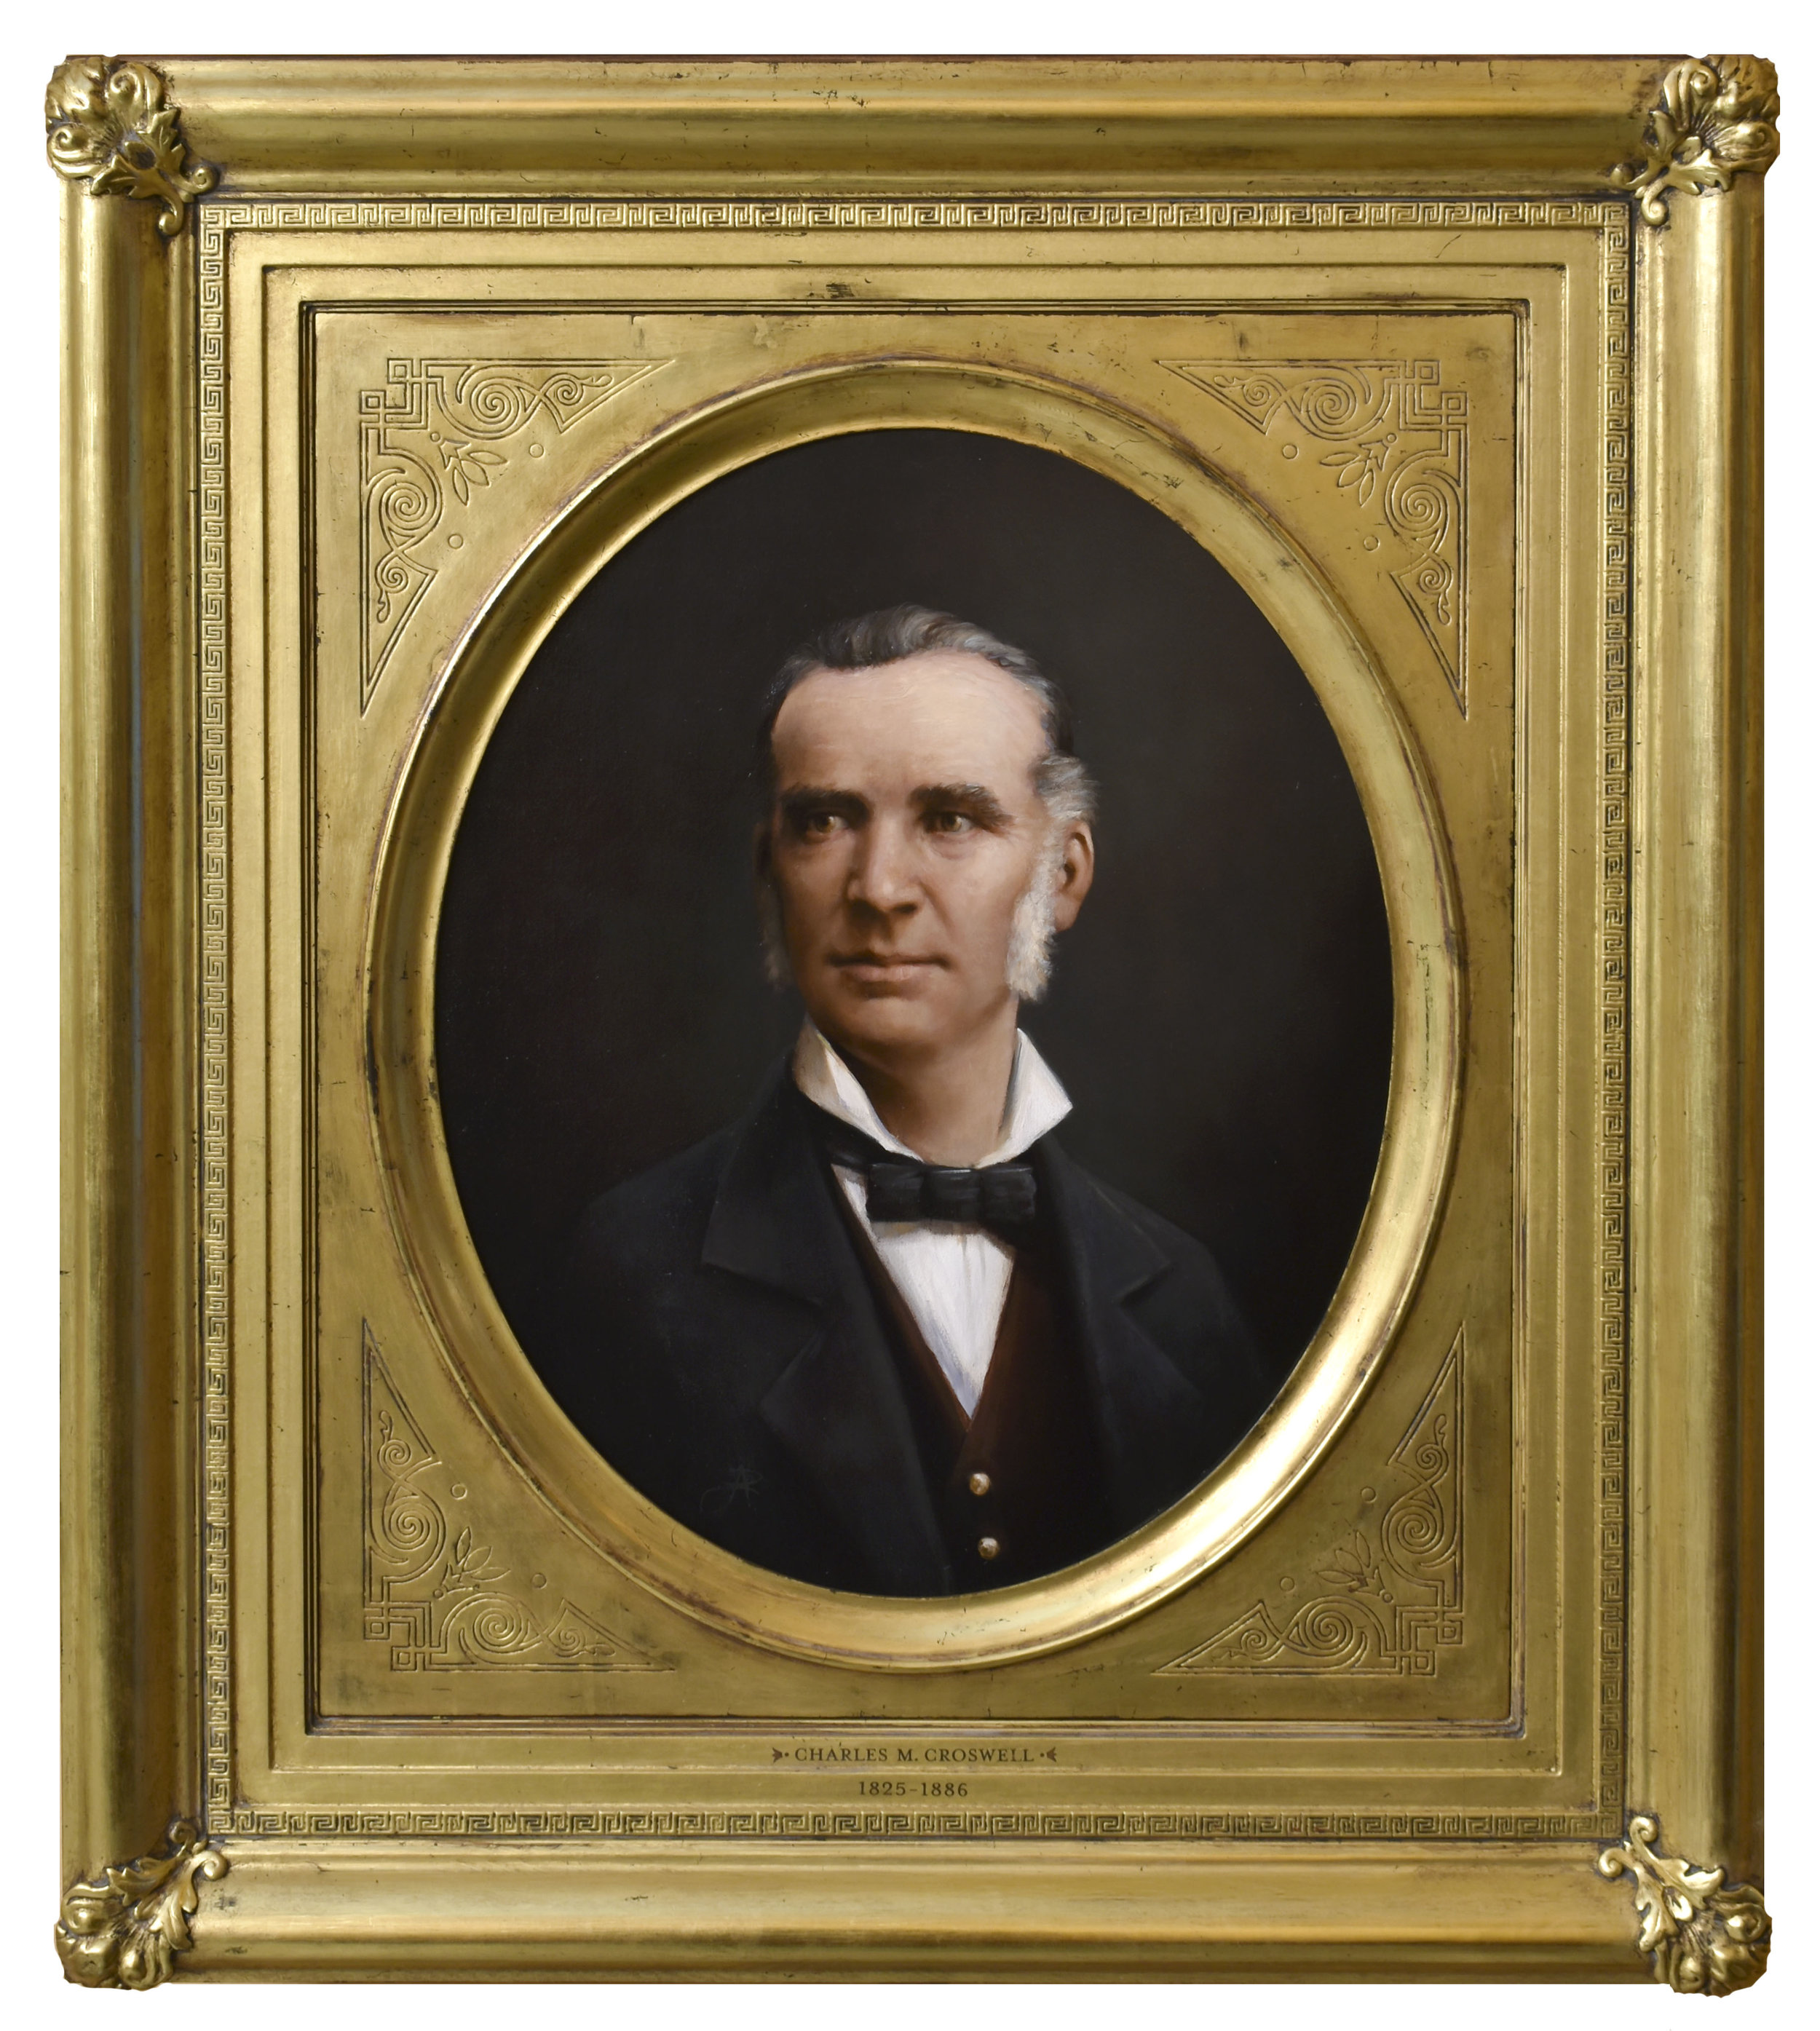 Governor Charles M. Croswell, Michigan